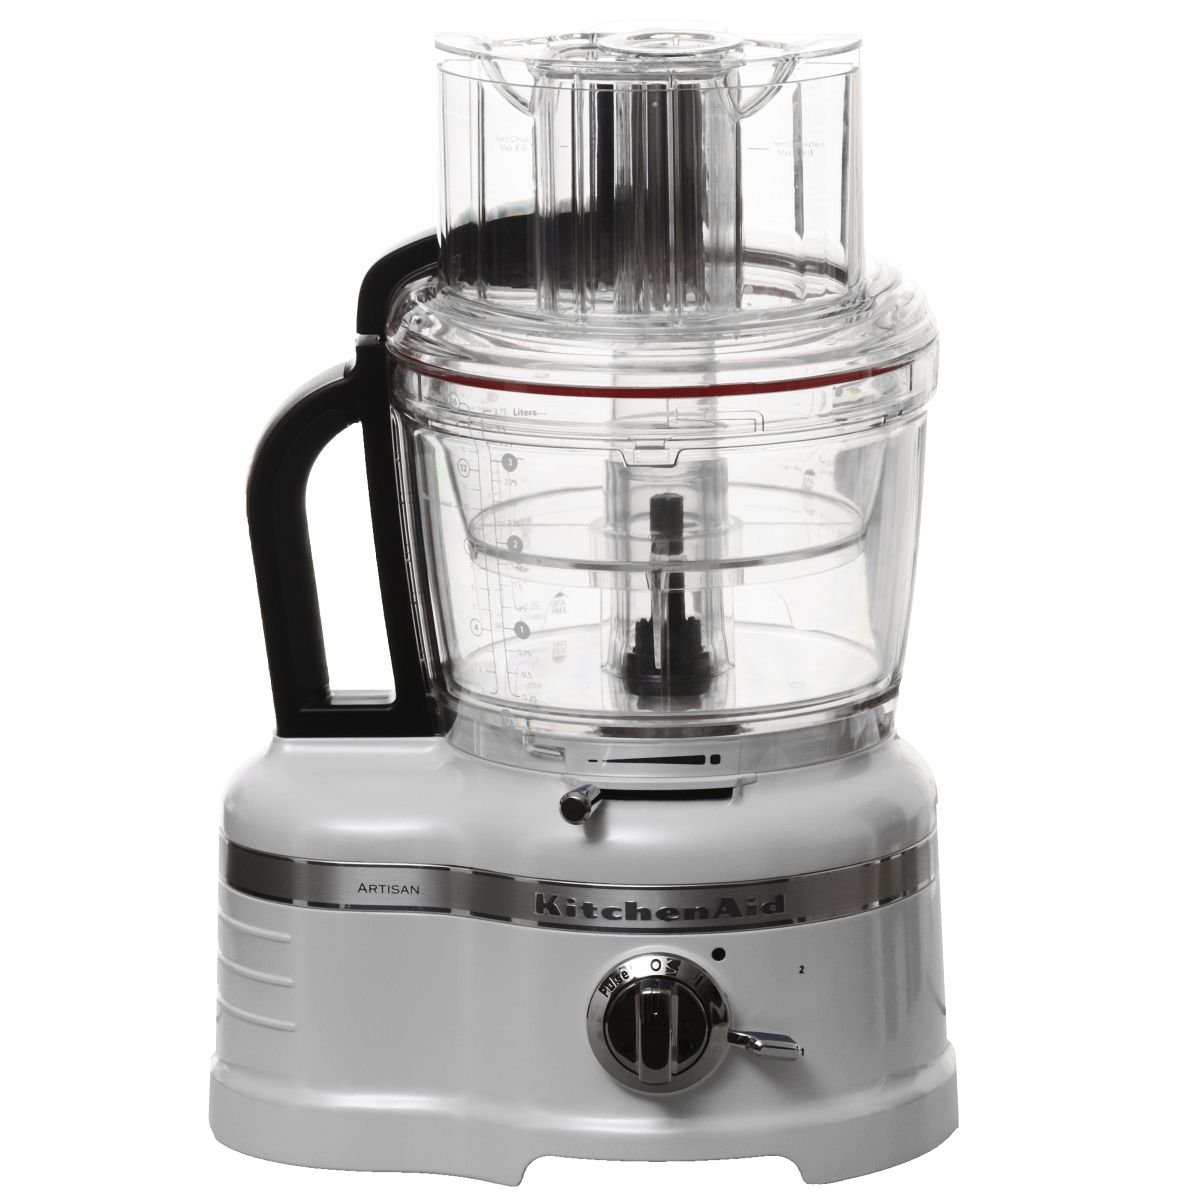 Amazon.de: Kitchenaid 5KFP1644EFP Artisan-Food Processor, Frosted Pearl